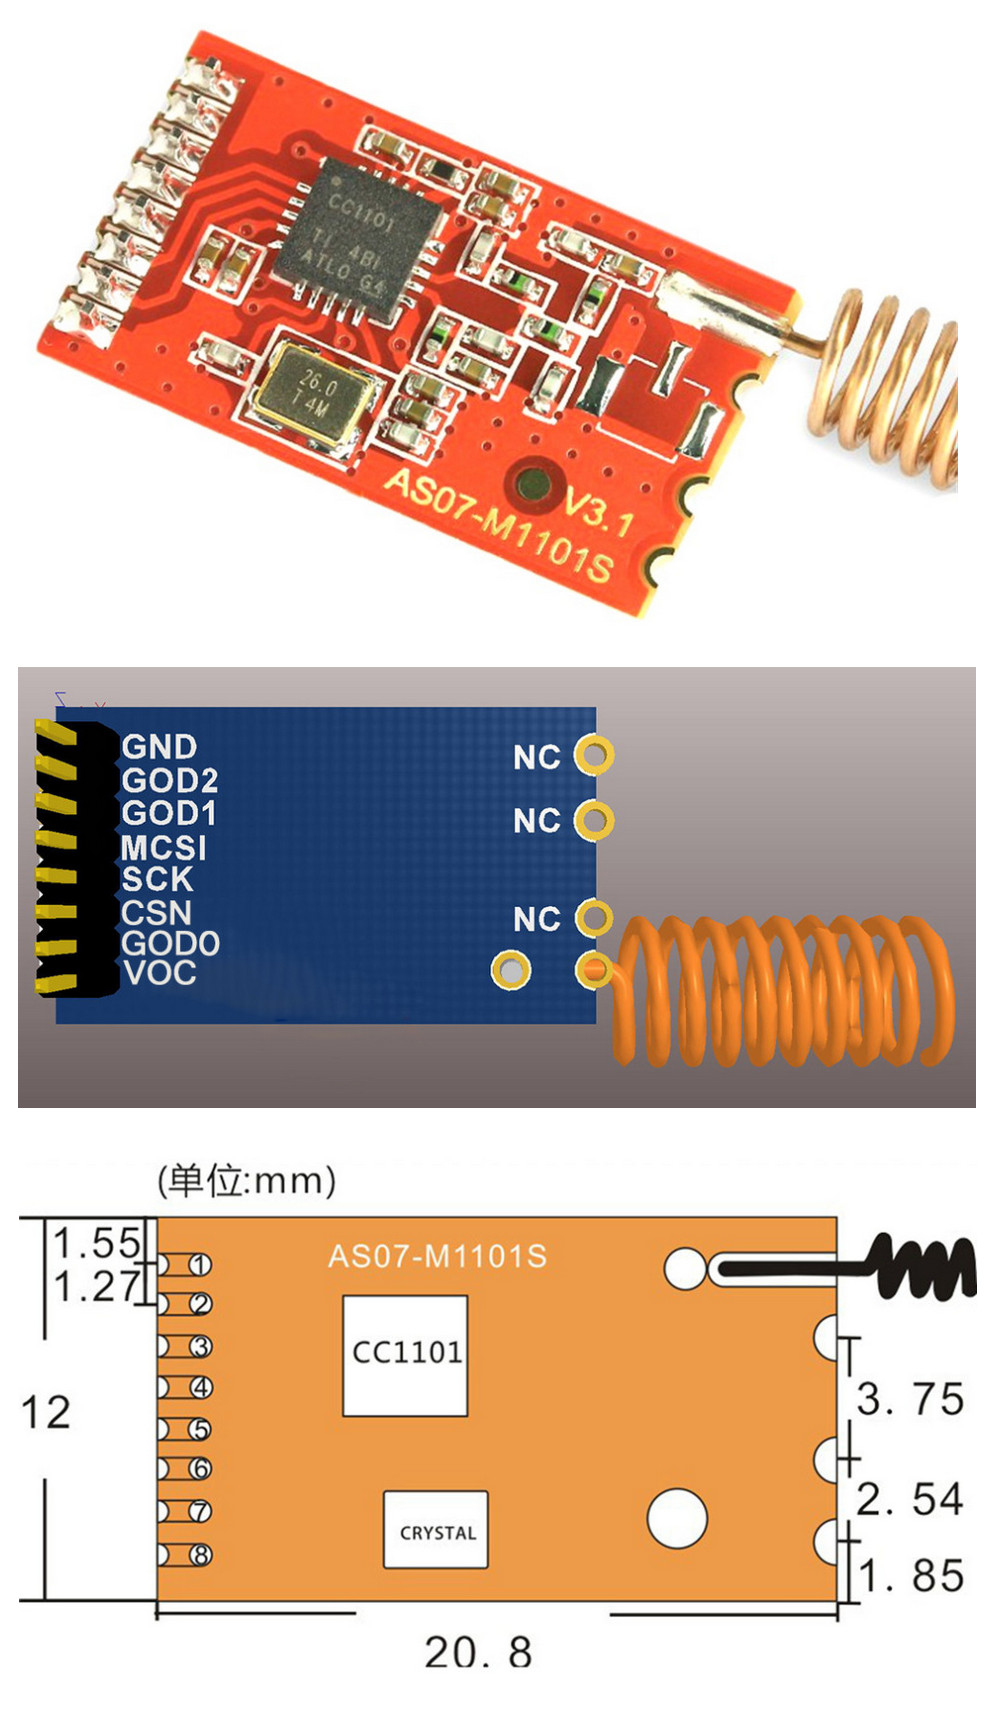 How many modules can Arduino Uno handle? - Quora